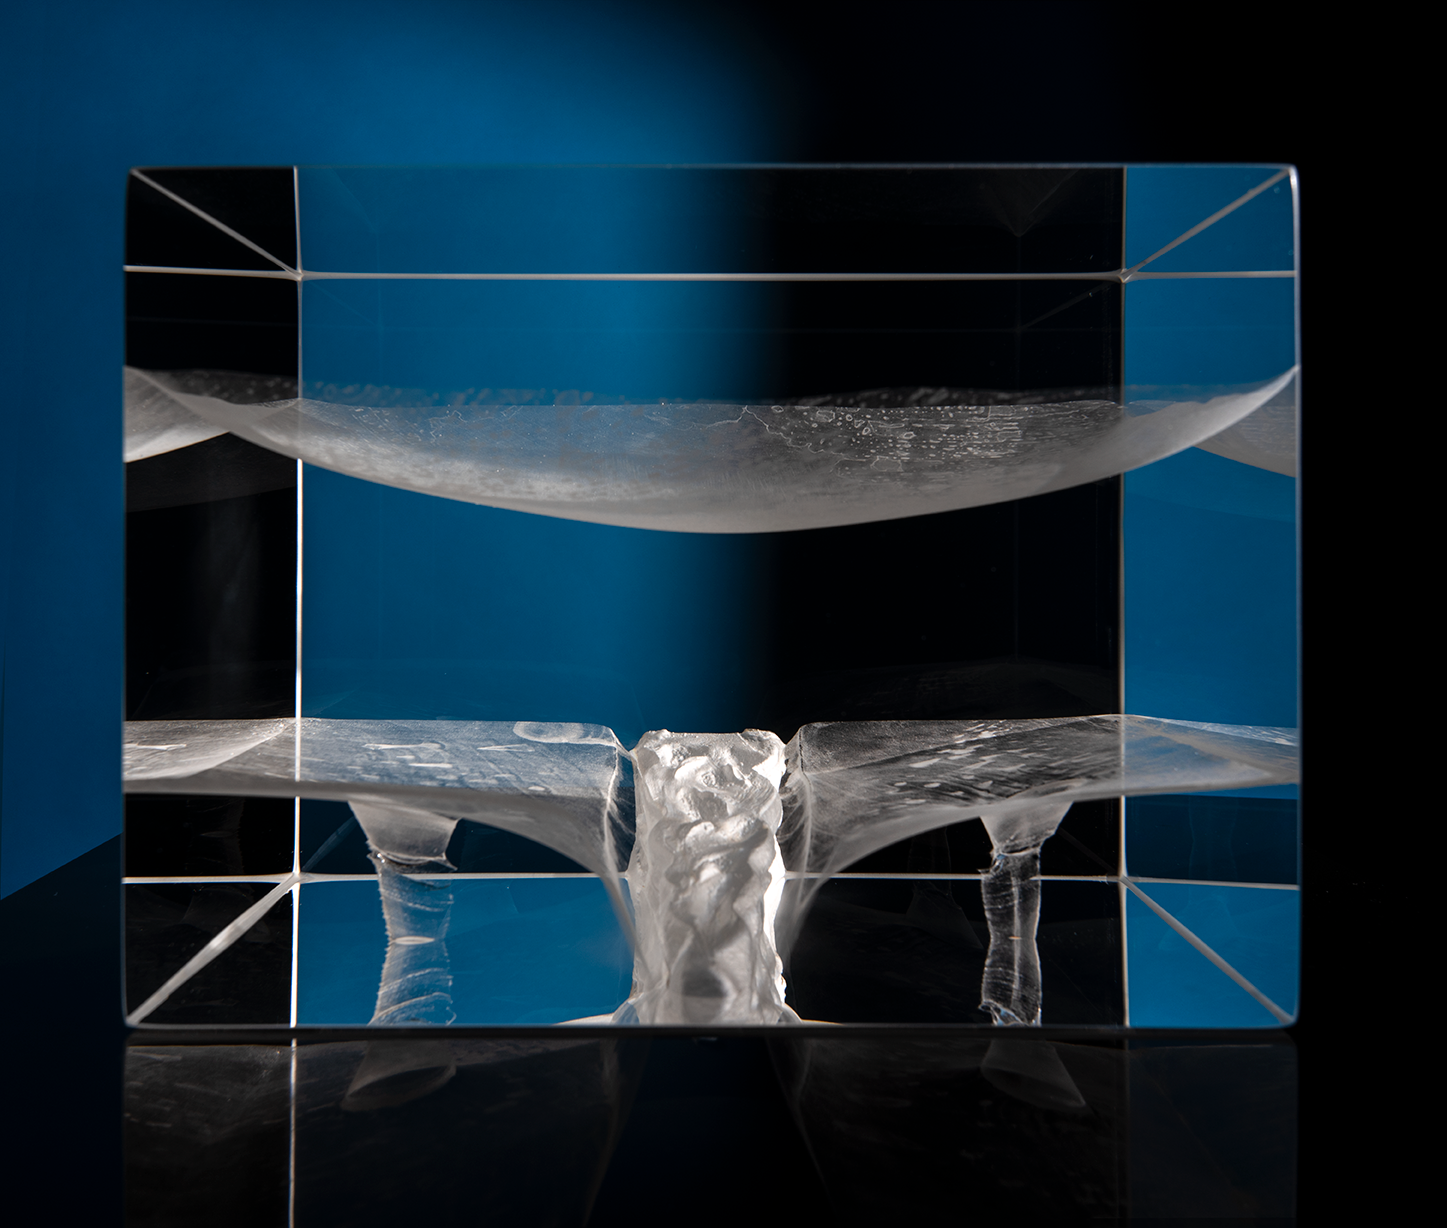 Duality contemporary glass sculpture